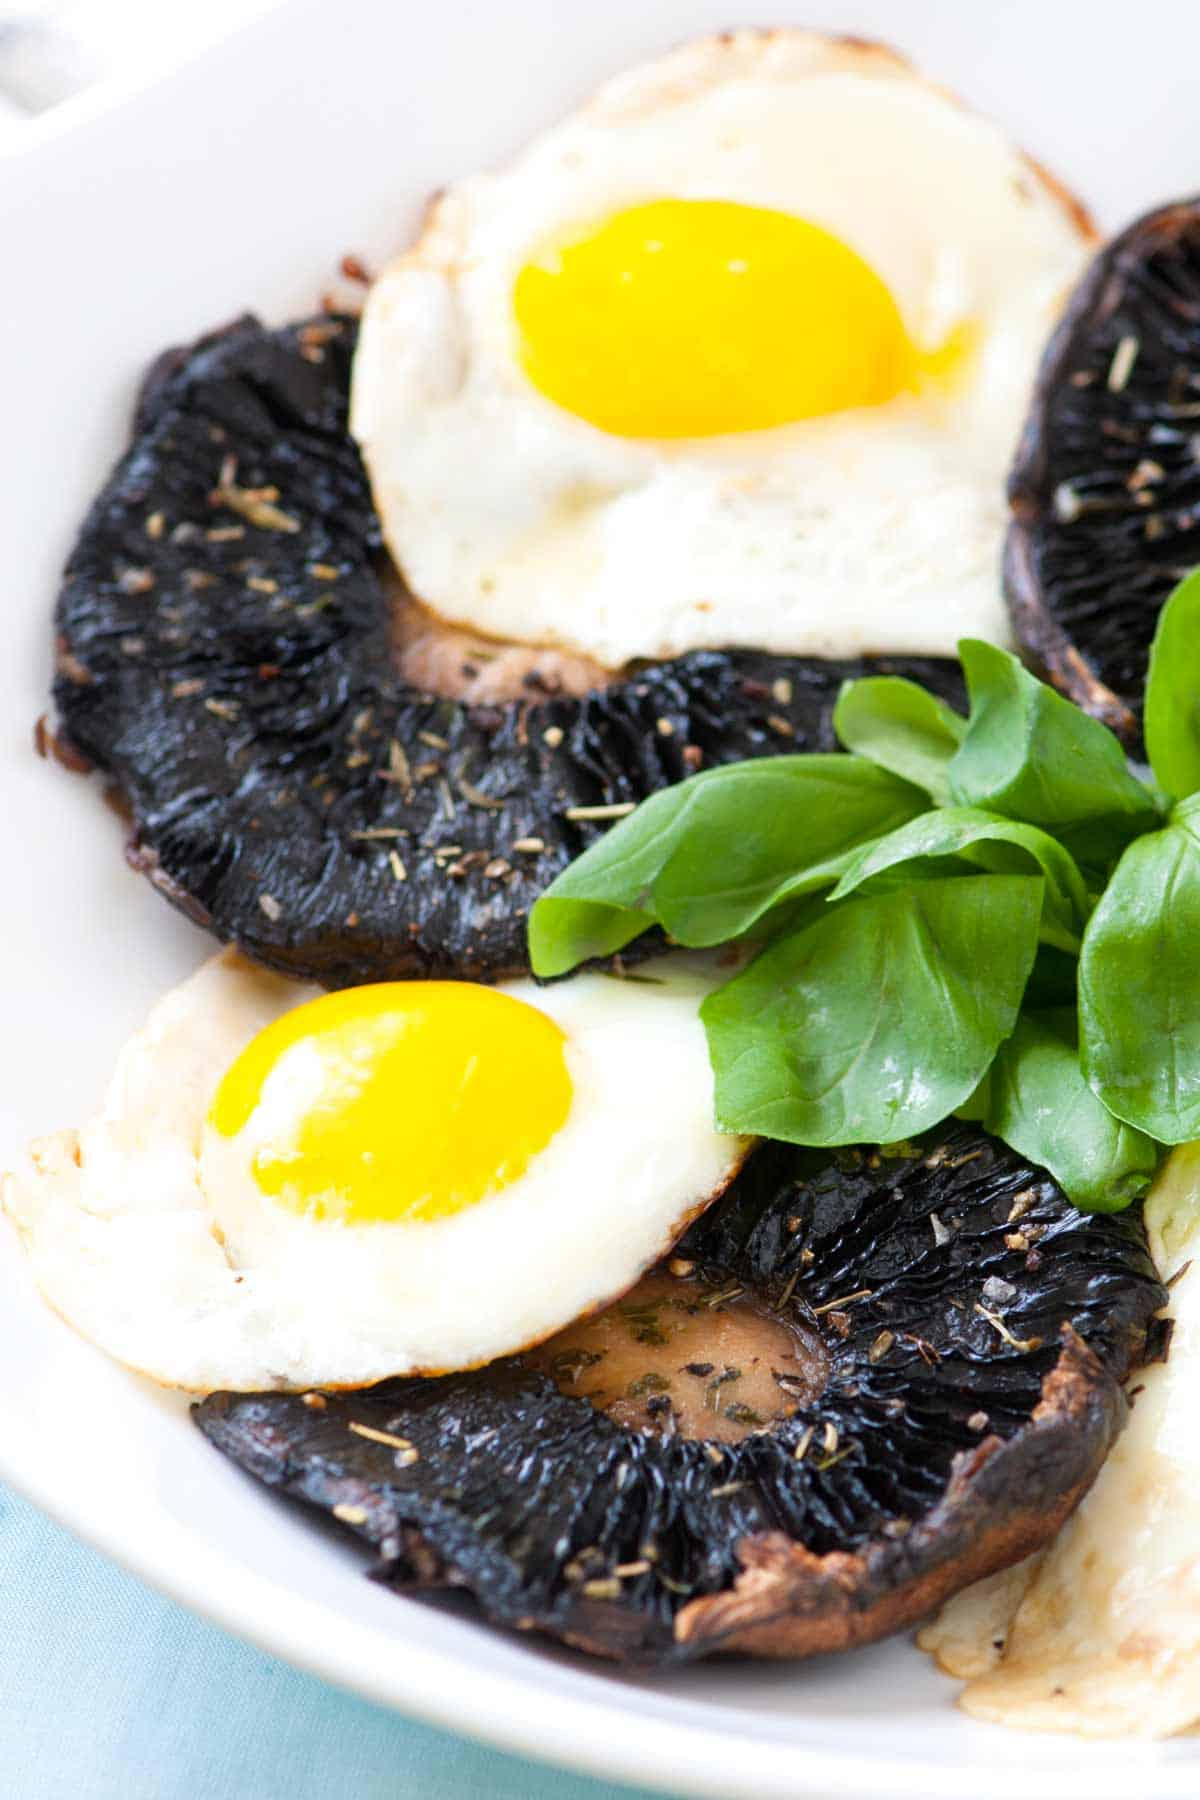 How to Make Roasted Mushrooms with Eggs